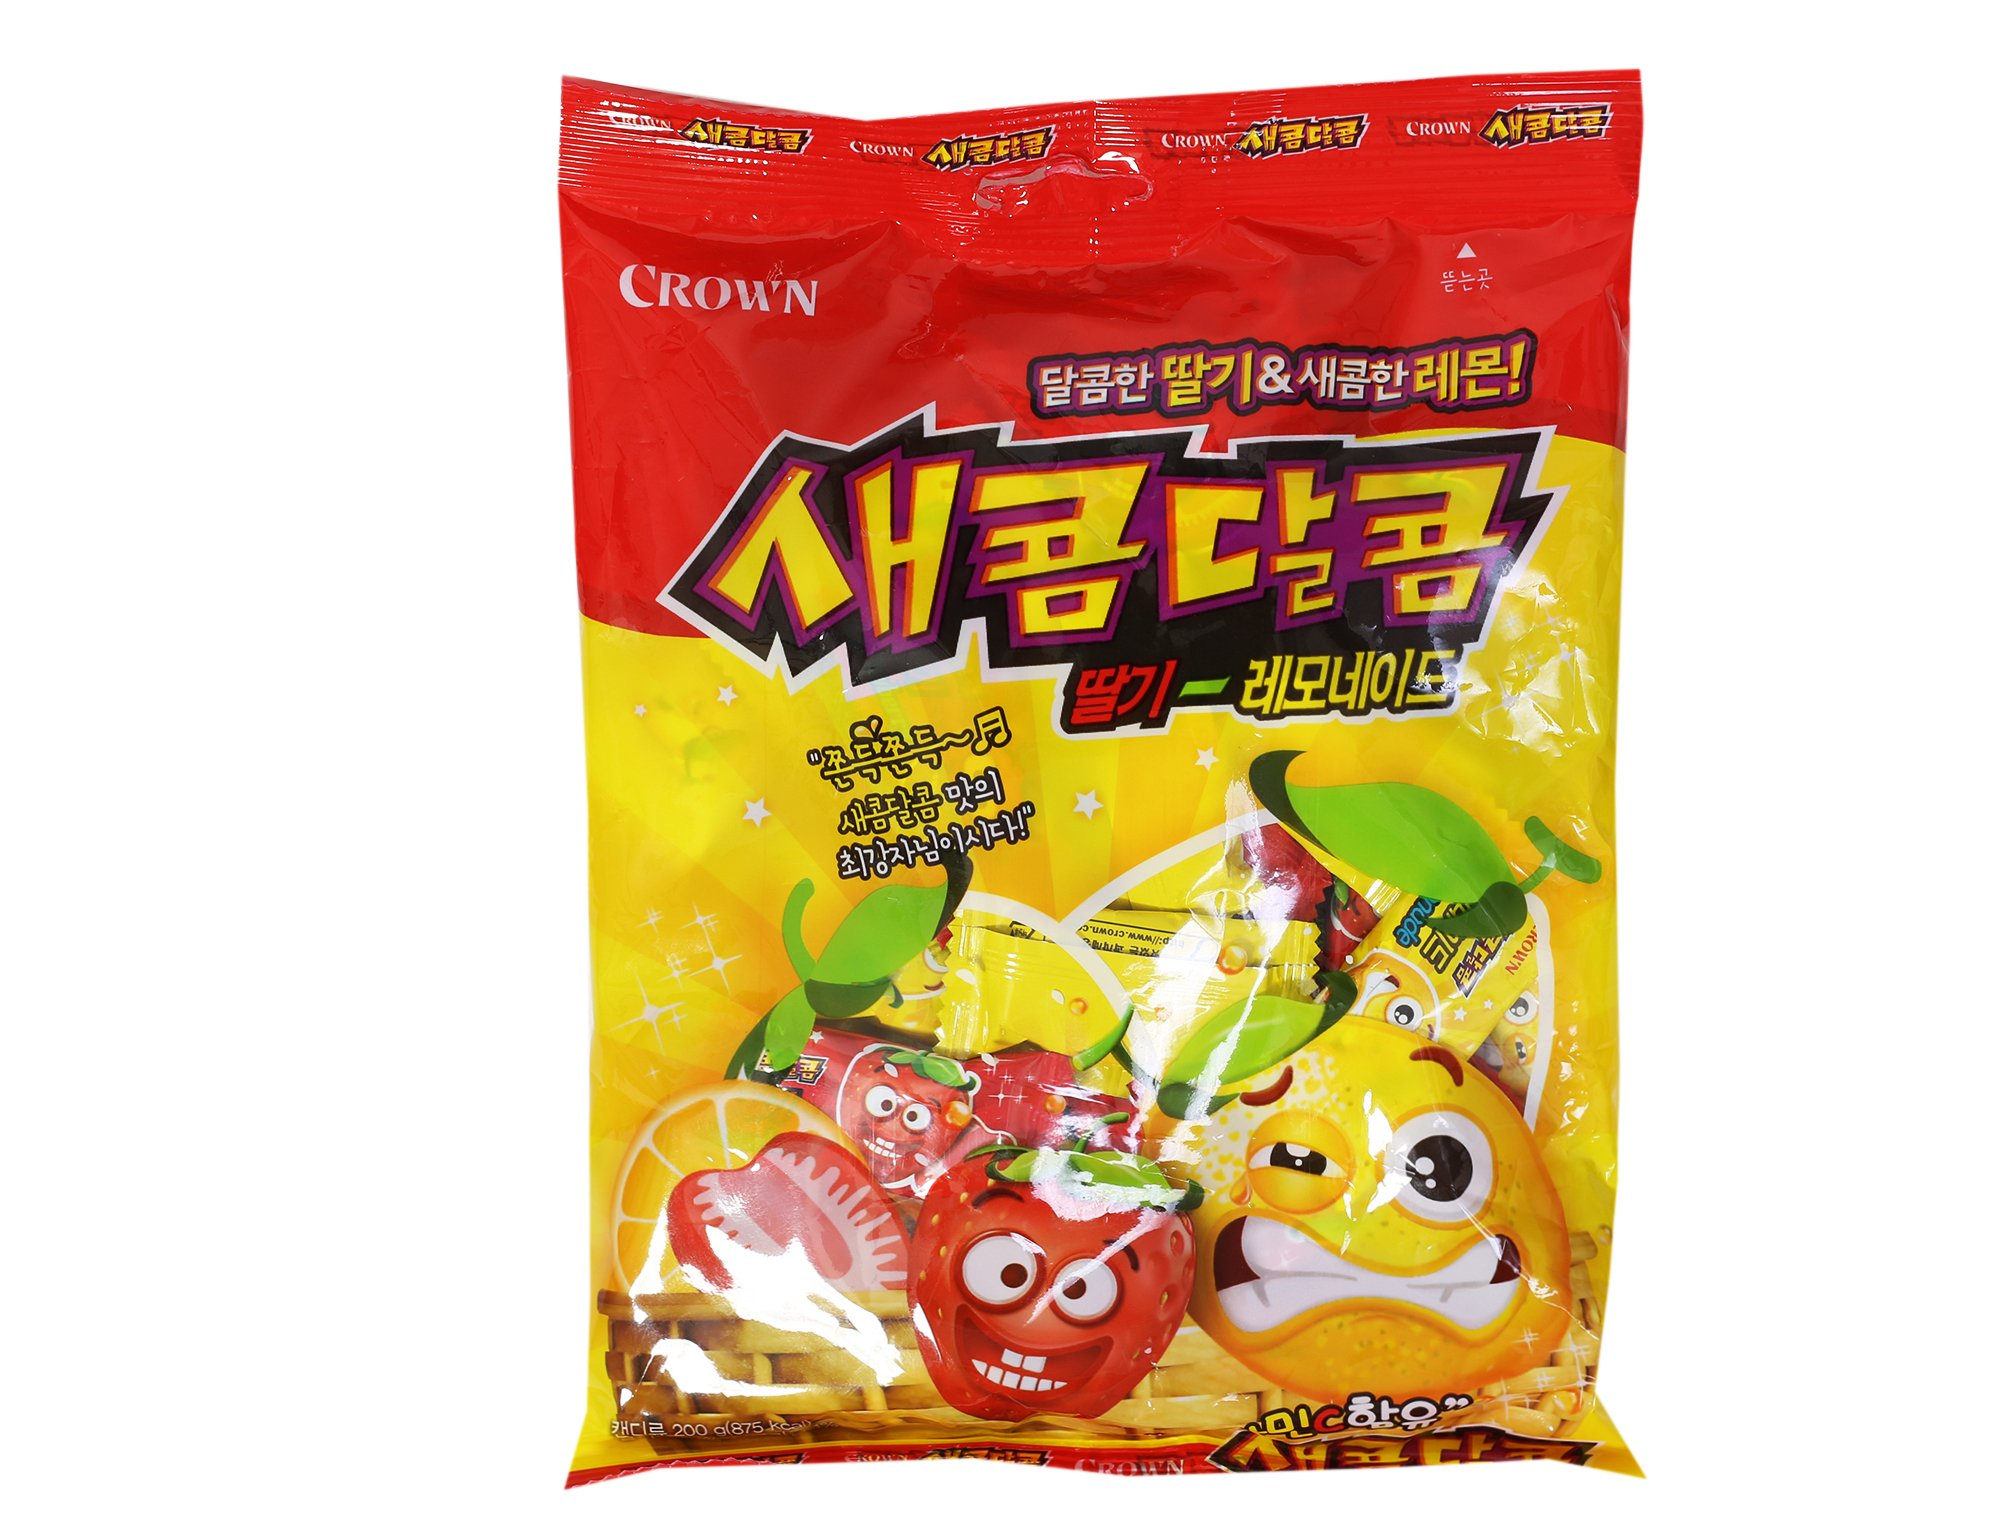 Korean Strawberry and Lemonade Flavored Chewy Sweet and Sour Candy 200g (10 Pack) by Crown